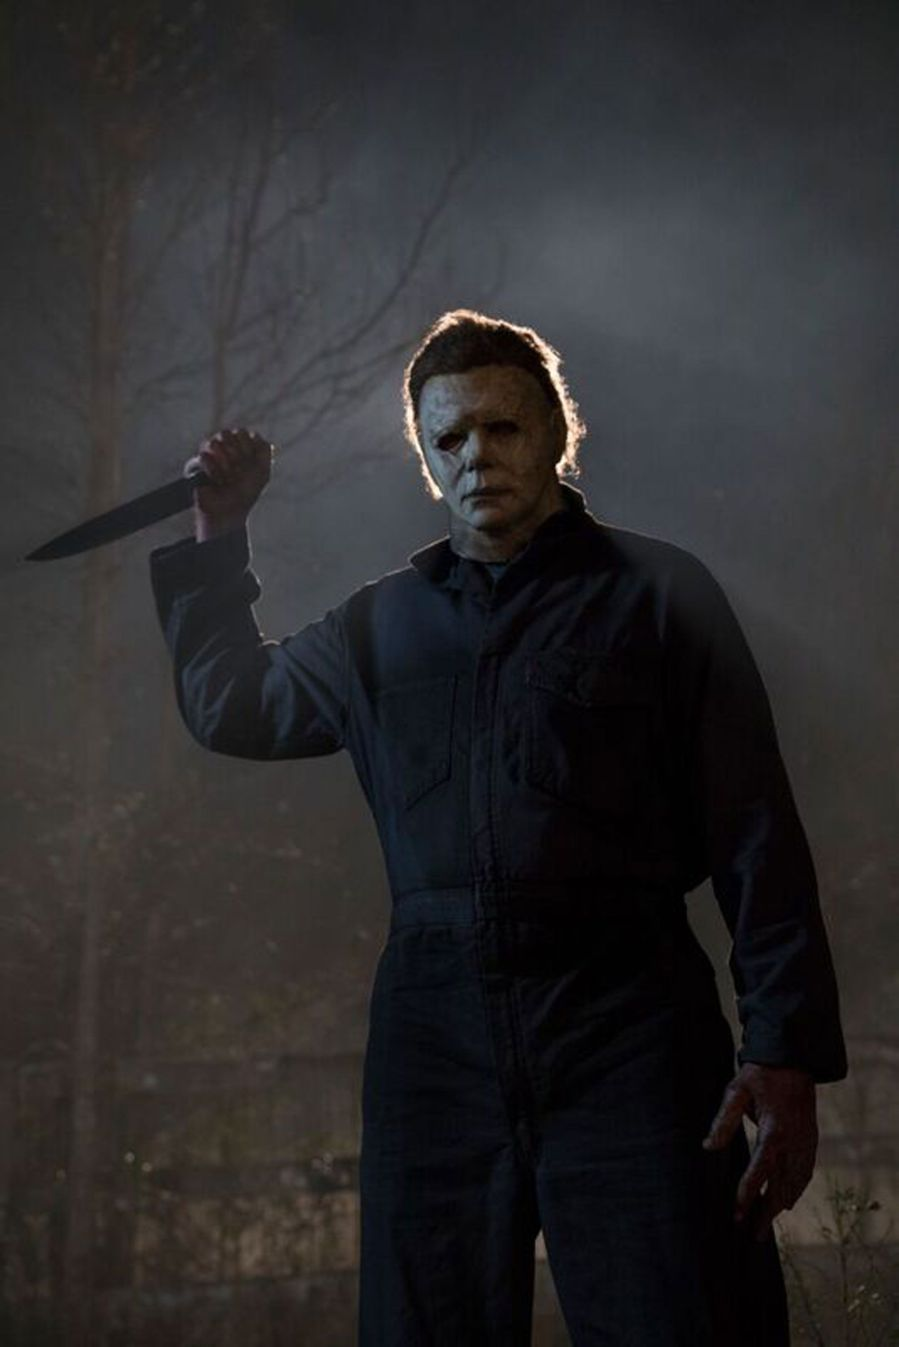 Halloween 2018 sequel: Release date, cast, plot and everything you need to know